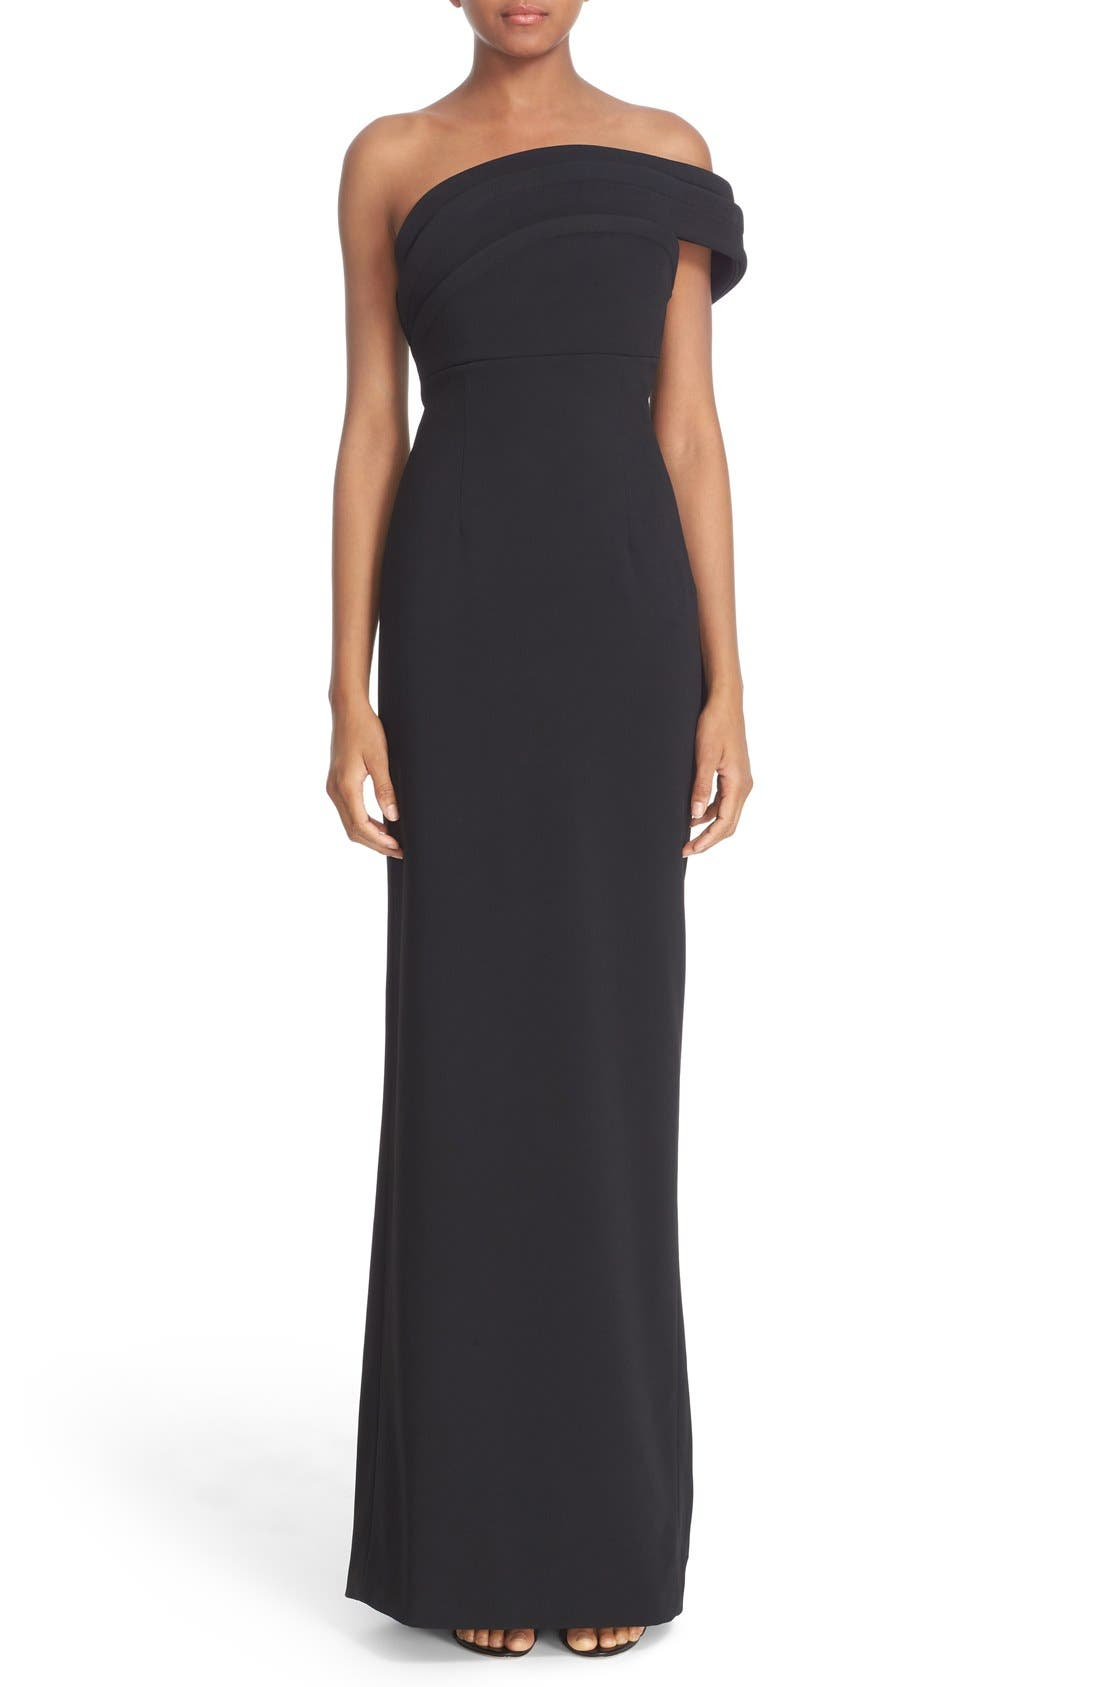 Main Image - Brandon Maxwell 'Cady' Off the Shoulder Column Gown